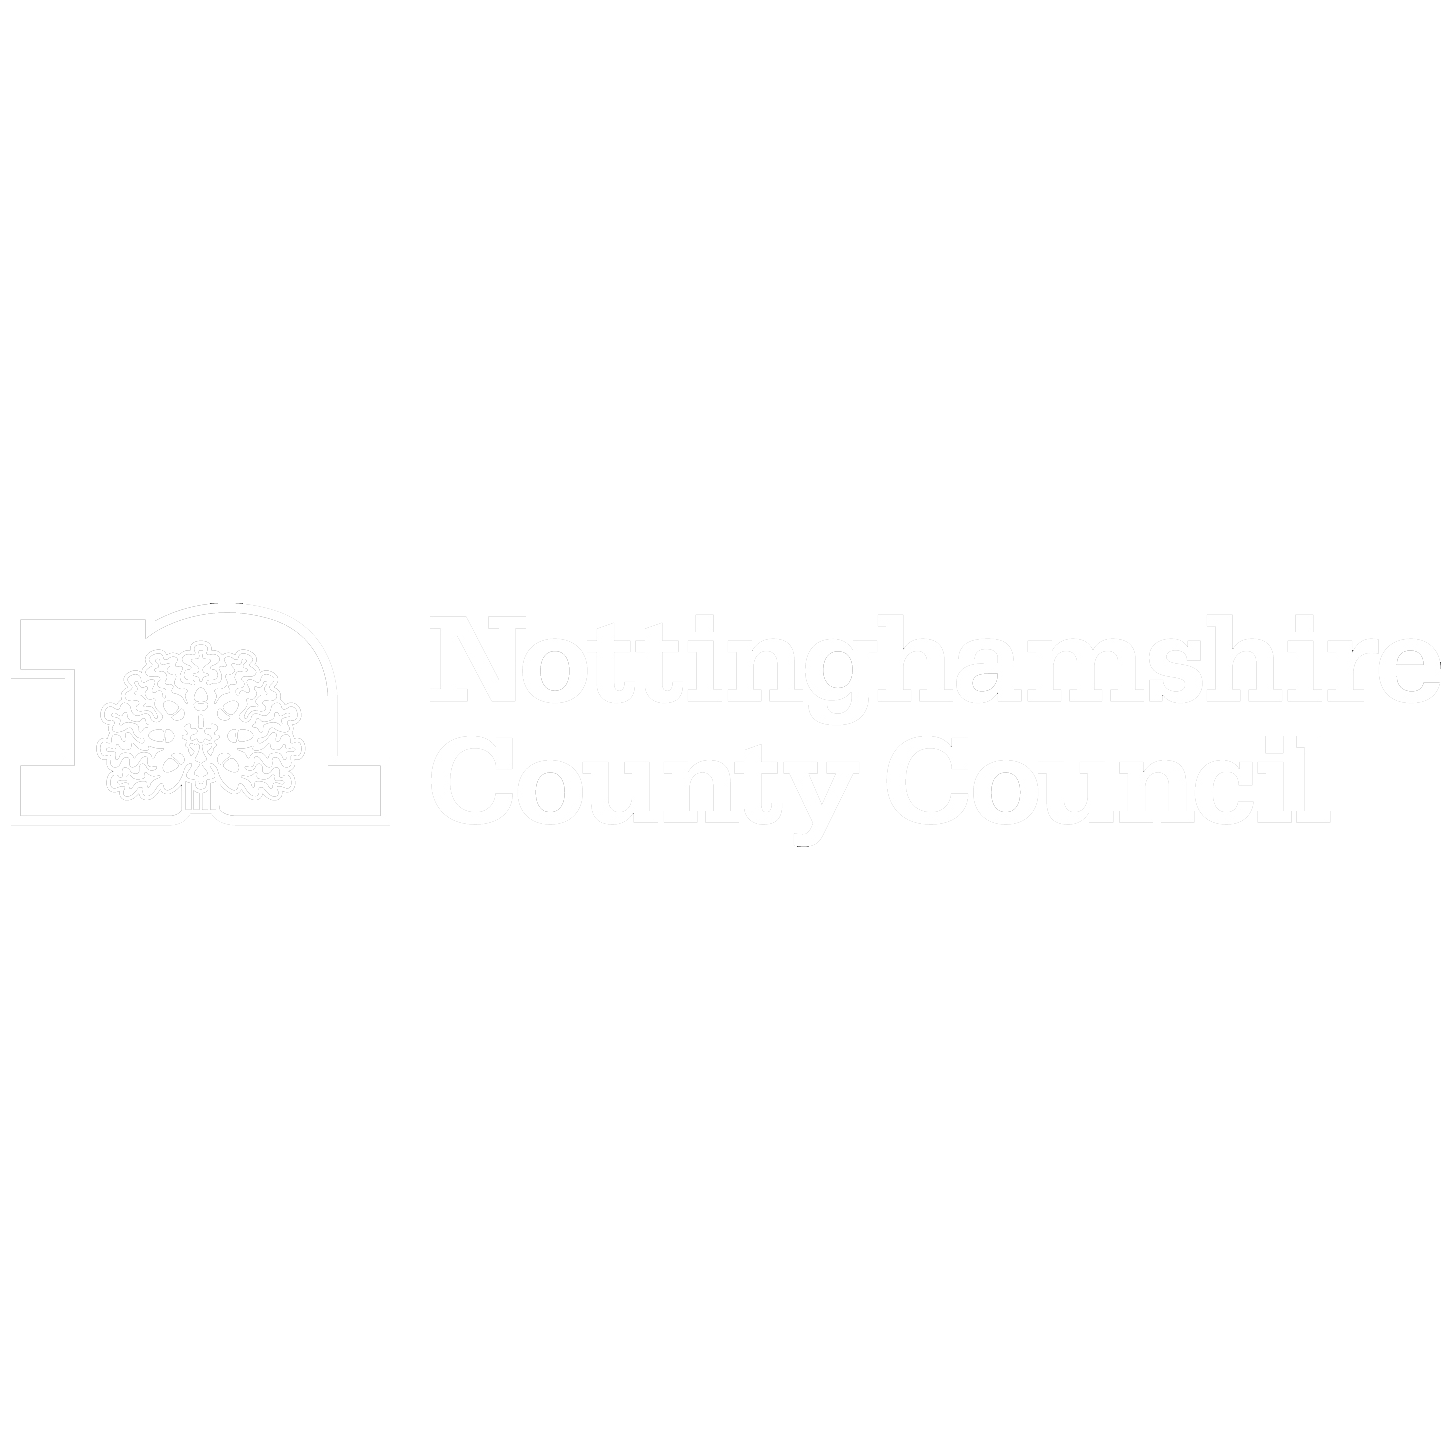 nottingham county council logo.png